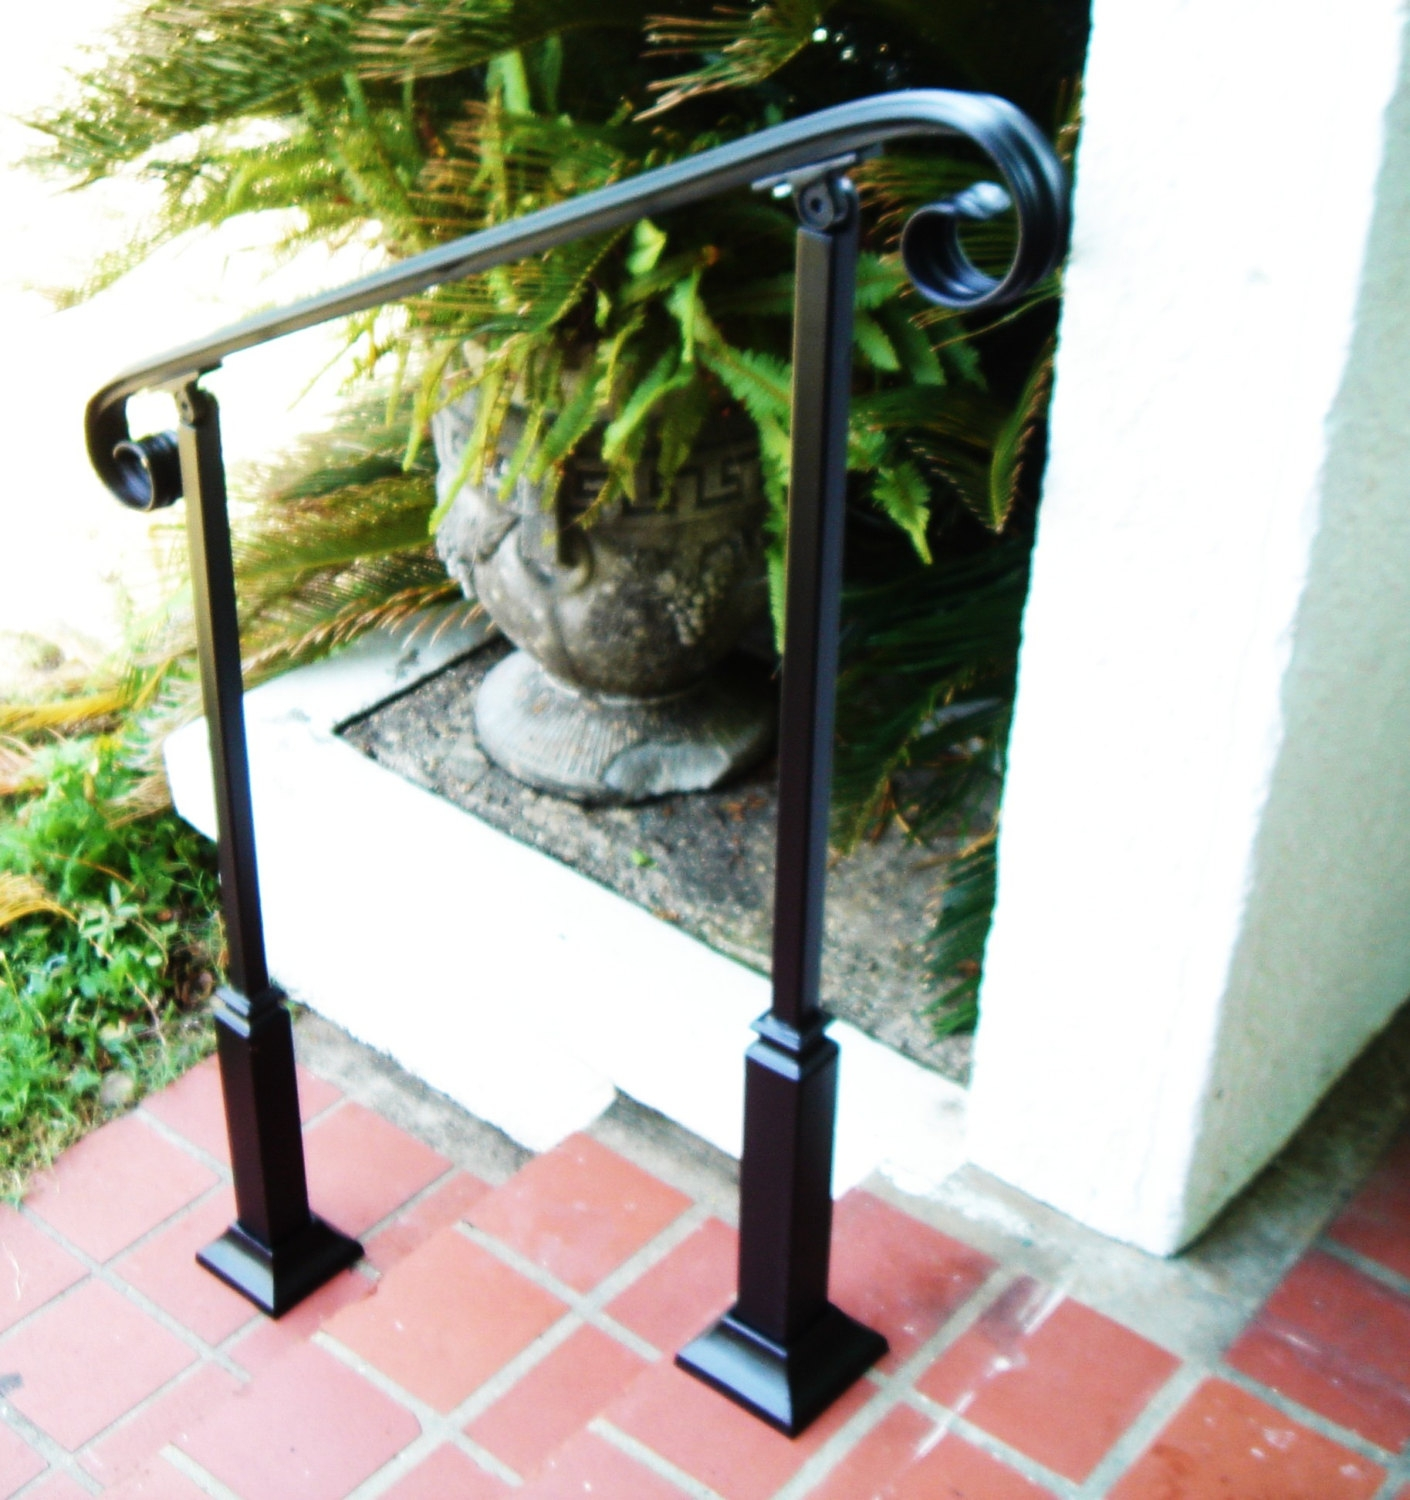 5 Ft Wrought Iron Stair Hand Rail 2 Decorative Posts | Iron Railings For Steps